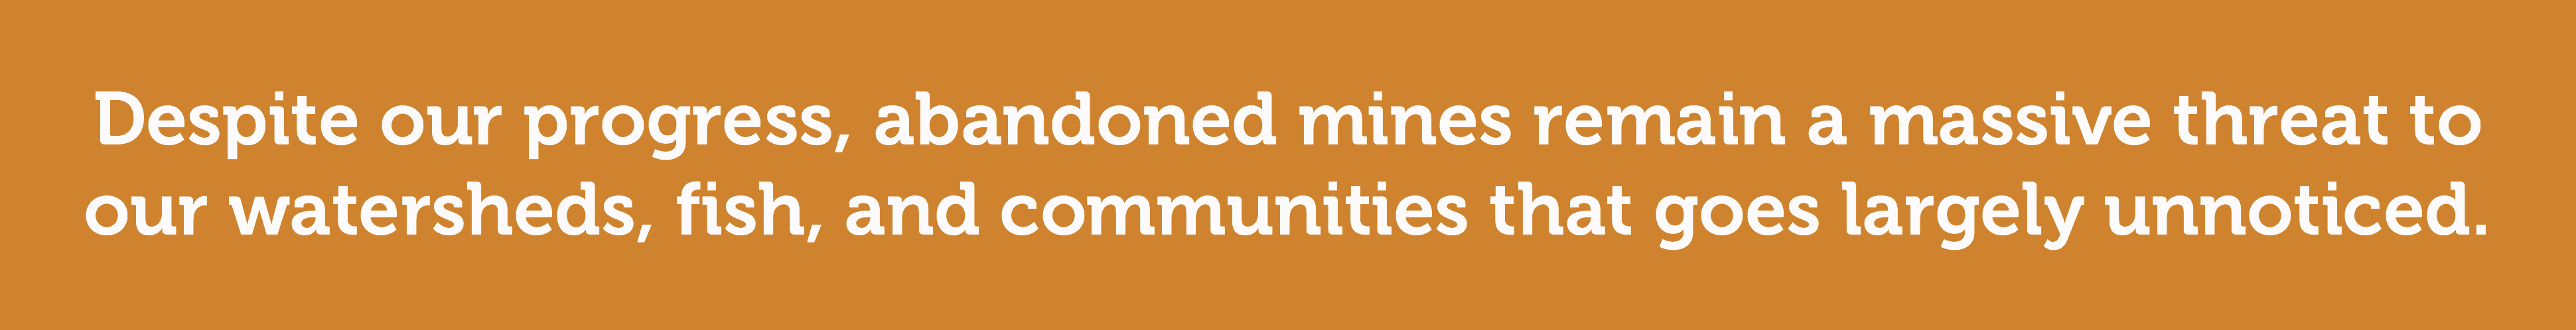 Despite our progress, abandoned mines remain a massive threat.